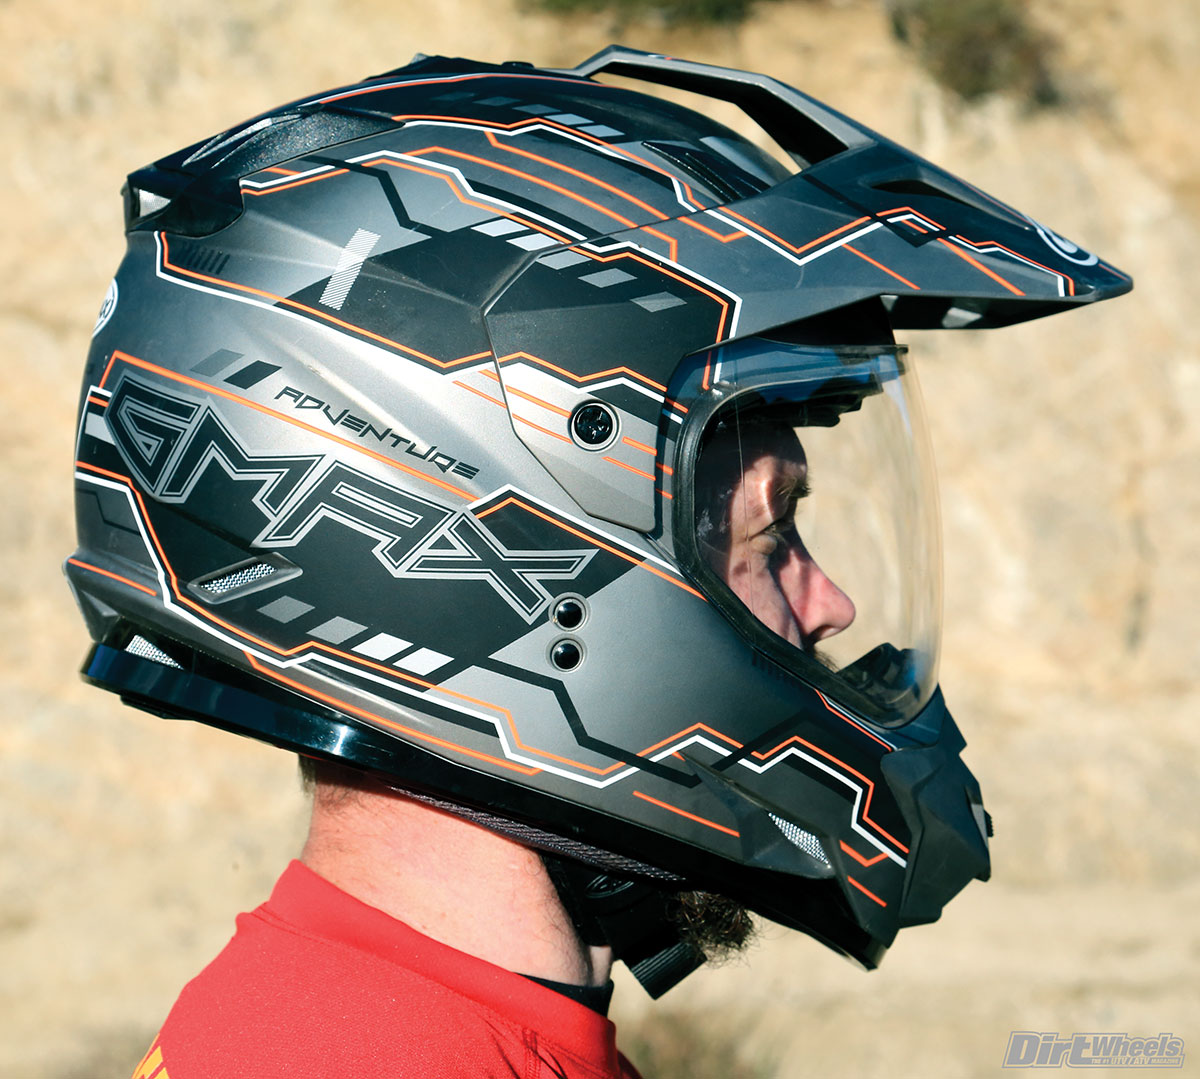 GMAX's GM11 ADV helmet is full-featured and comfortable with a shield that wears well without scratching. All of the features come with a penalty. It is a little heavy.